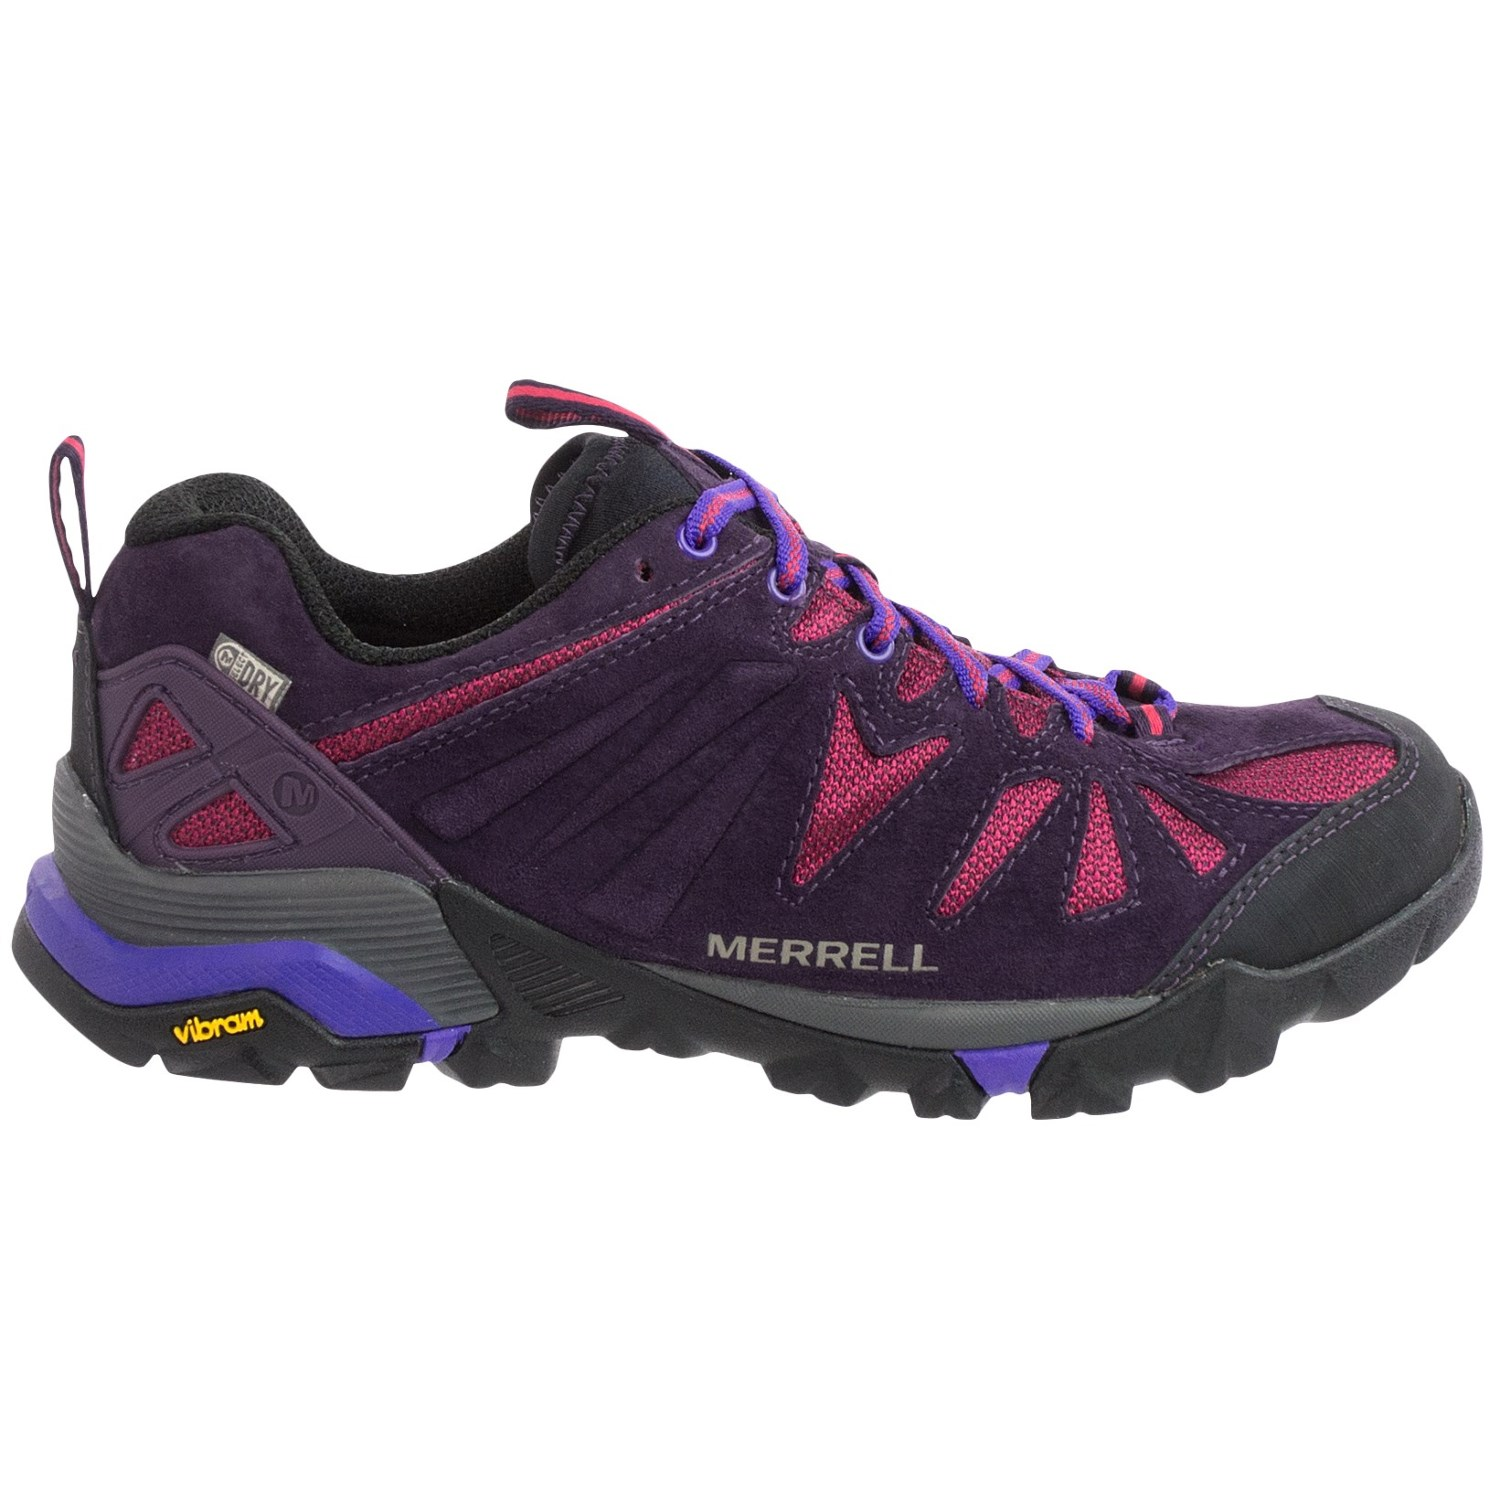 Merrell Capra Hiking Shoes (For Women) - Save 50%